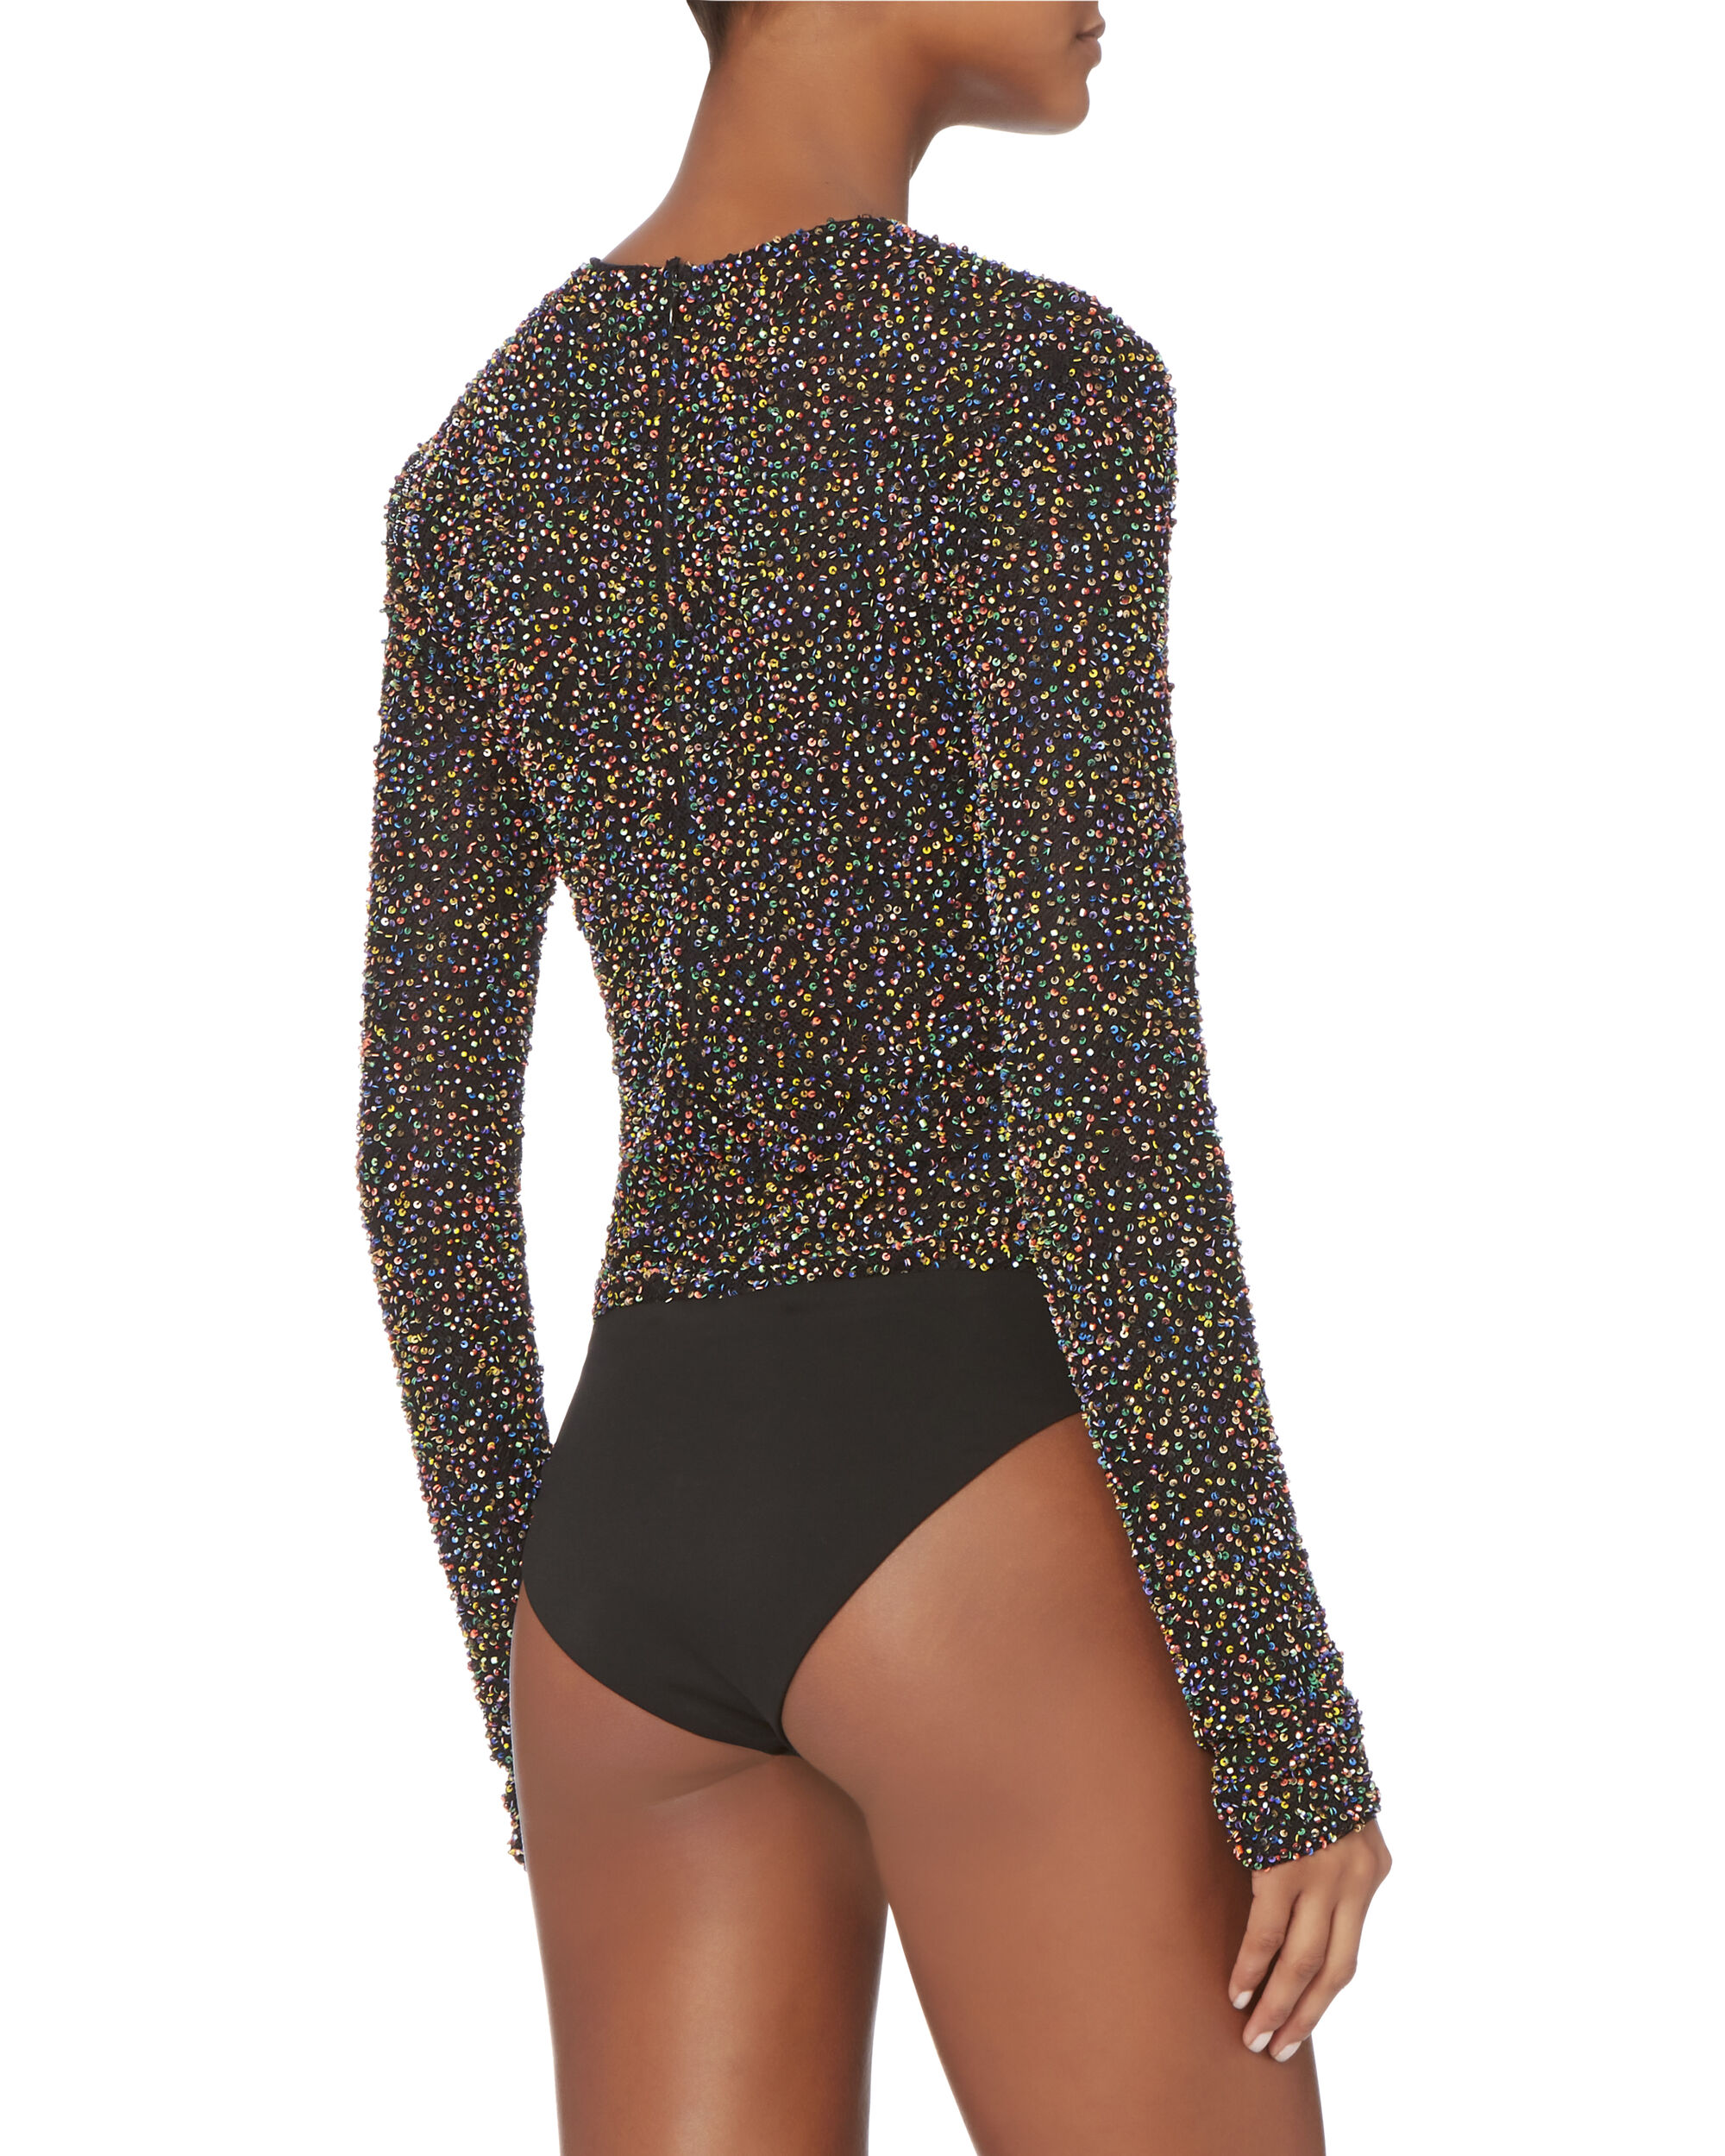 Confetti Beaded Mesh Bodysuit, MULTI, hi-res